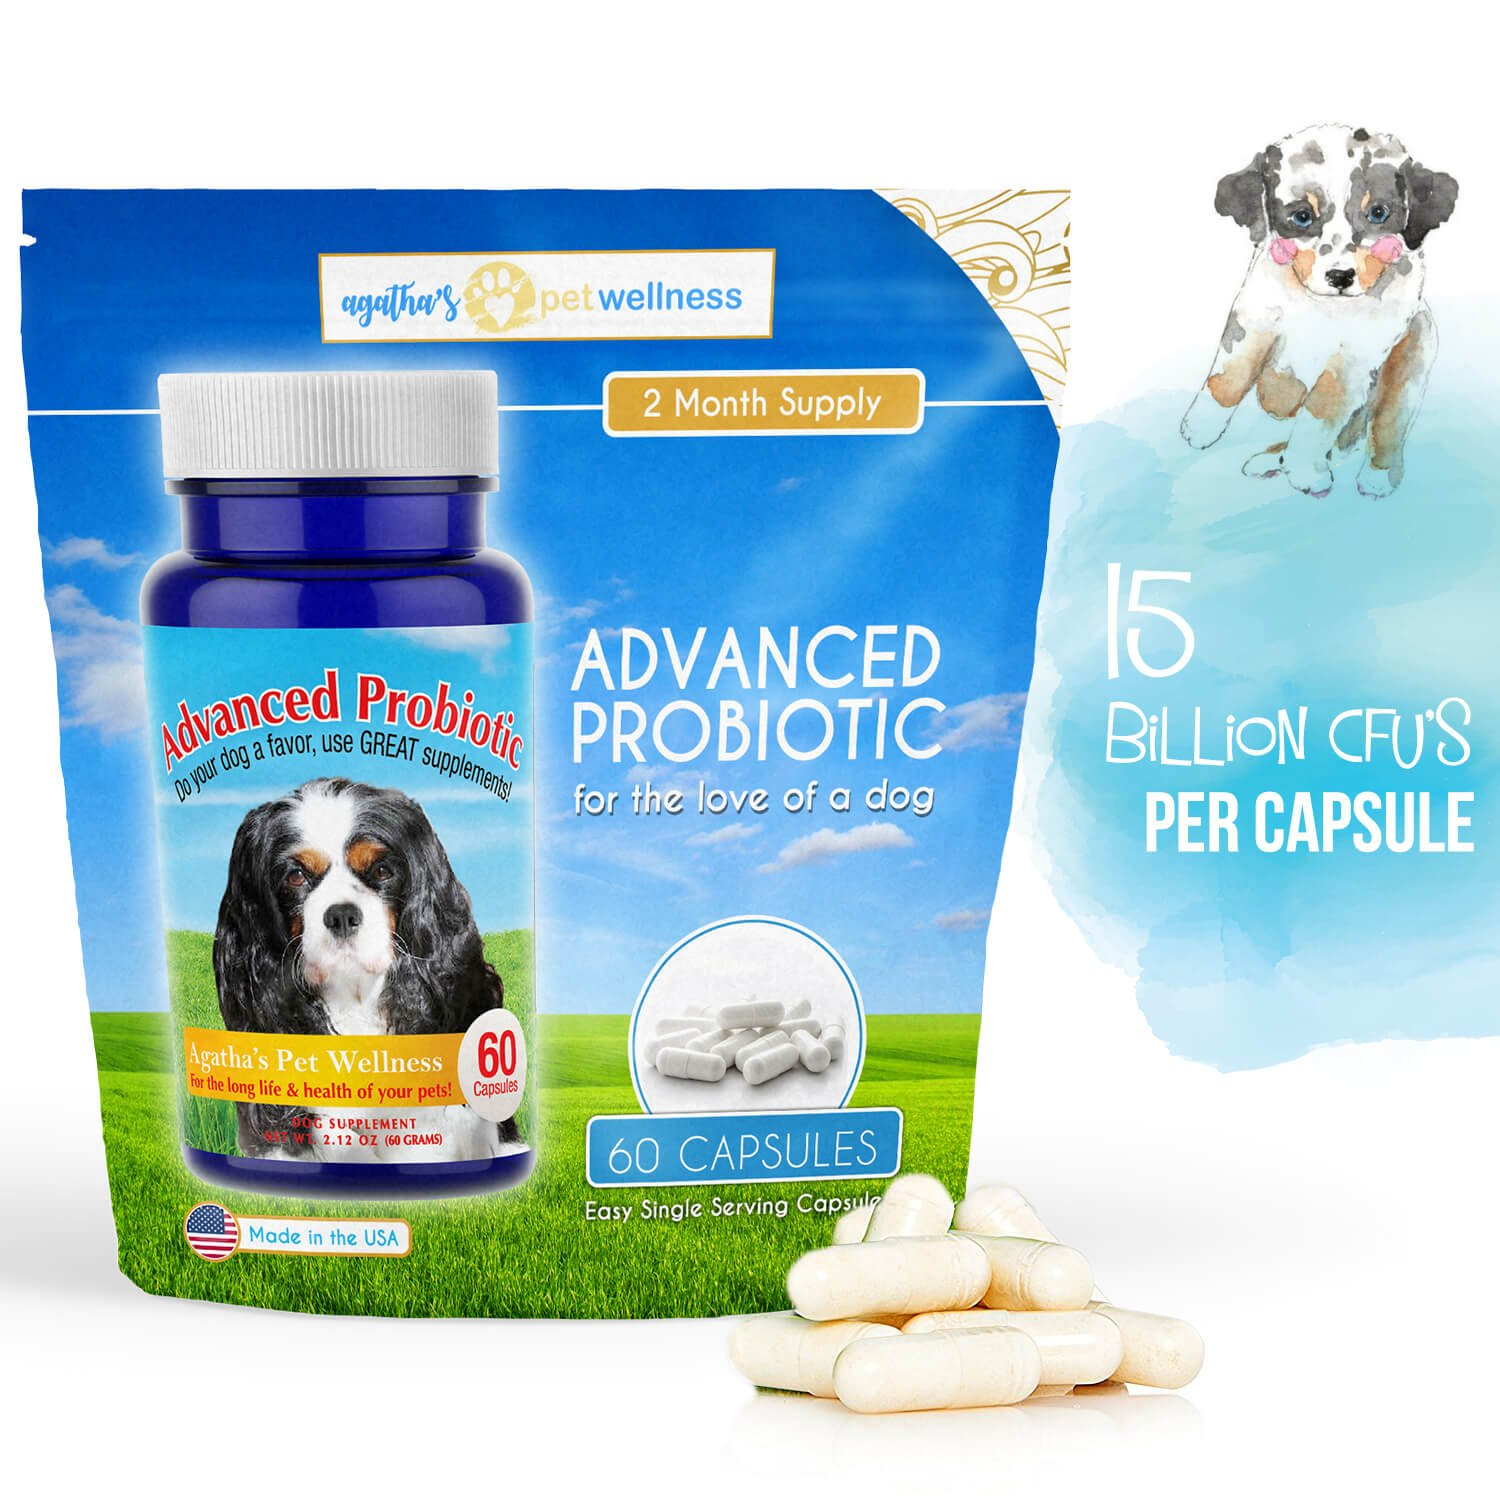 instecho Advanced Probiotic 2 Month Supply - 15 billion/CFU 10 Strains for Dog Health-Voted Best Dog Probiotic 2017 & 2018! Helps Digestion, IBS, Allergies, Dental Issues, Yeast, Diarrhea